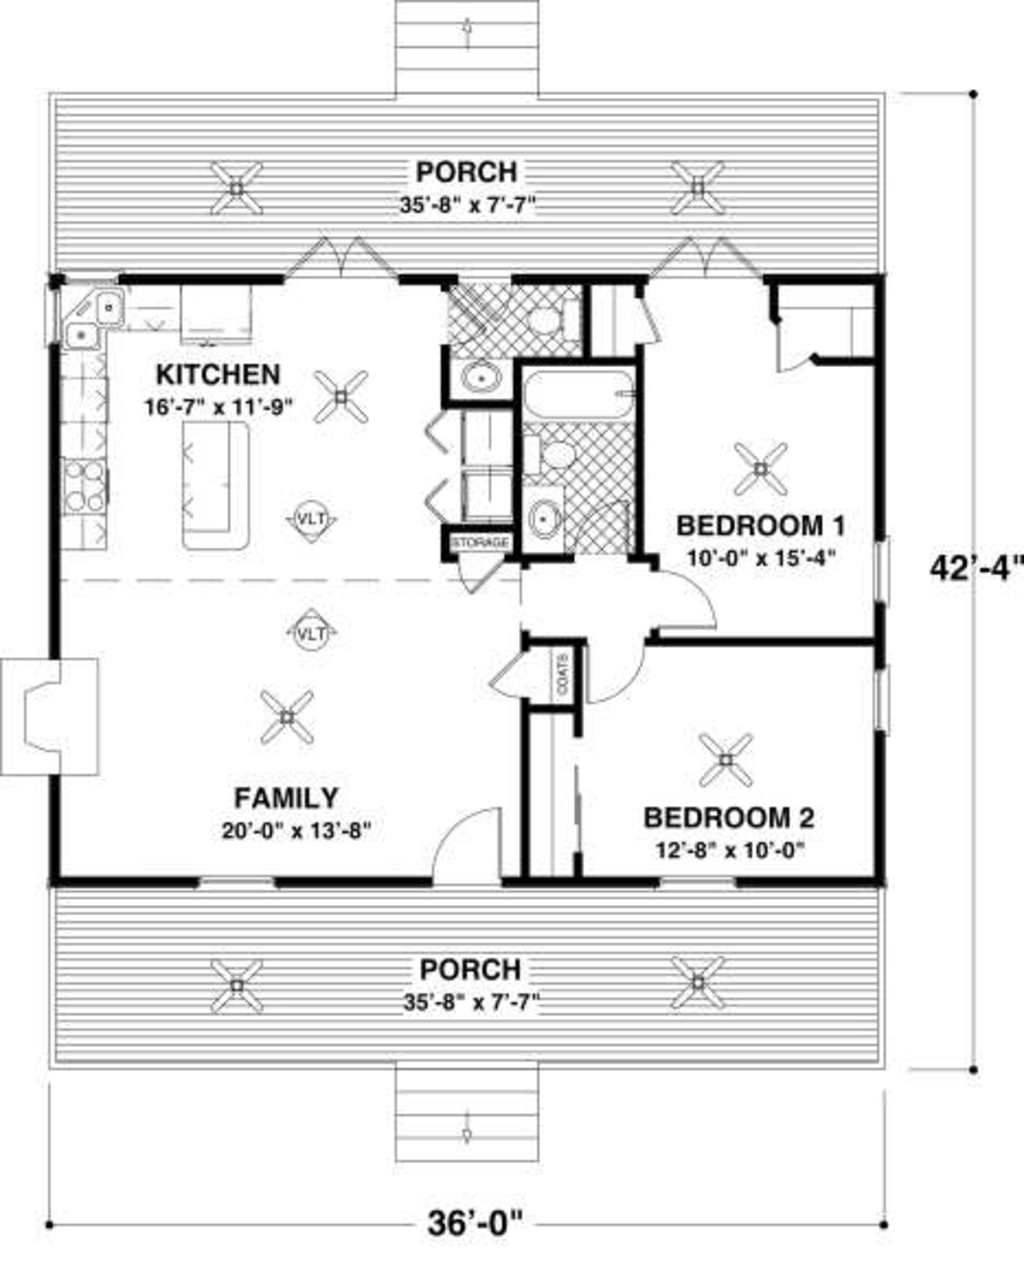 Cottage Style House Plan 2 Beds 1 5 Baths 954 Sq Ft Plan 56 547 Small House Floor Plans Small House Plans Cottage Style House Plans